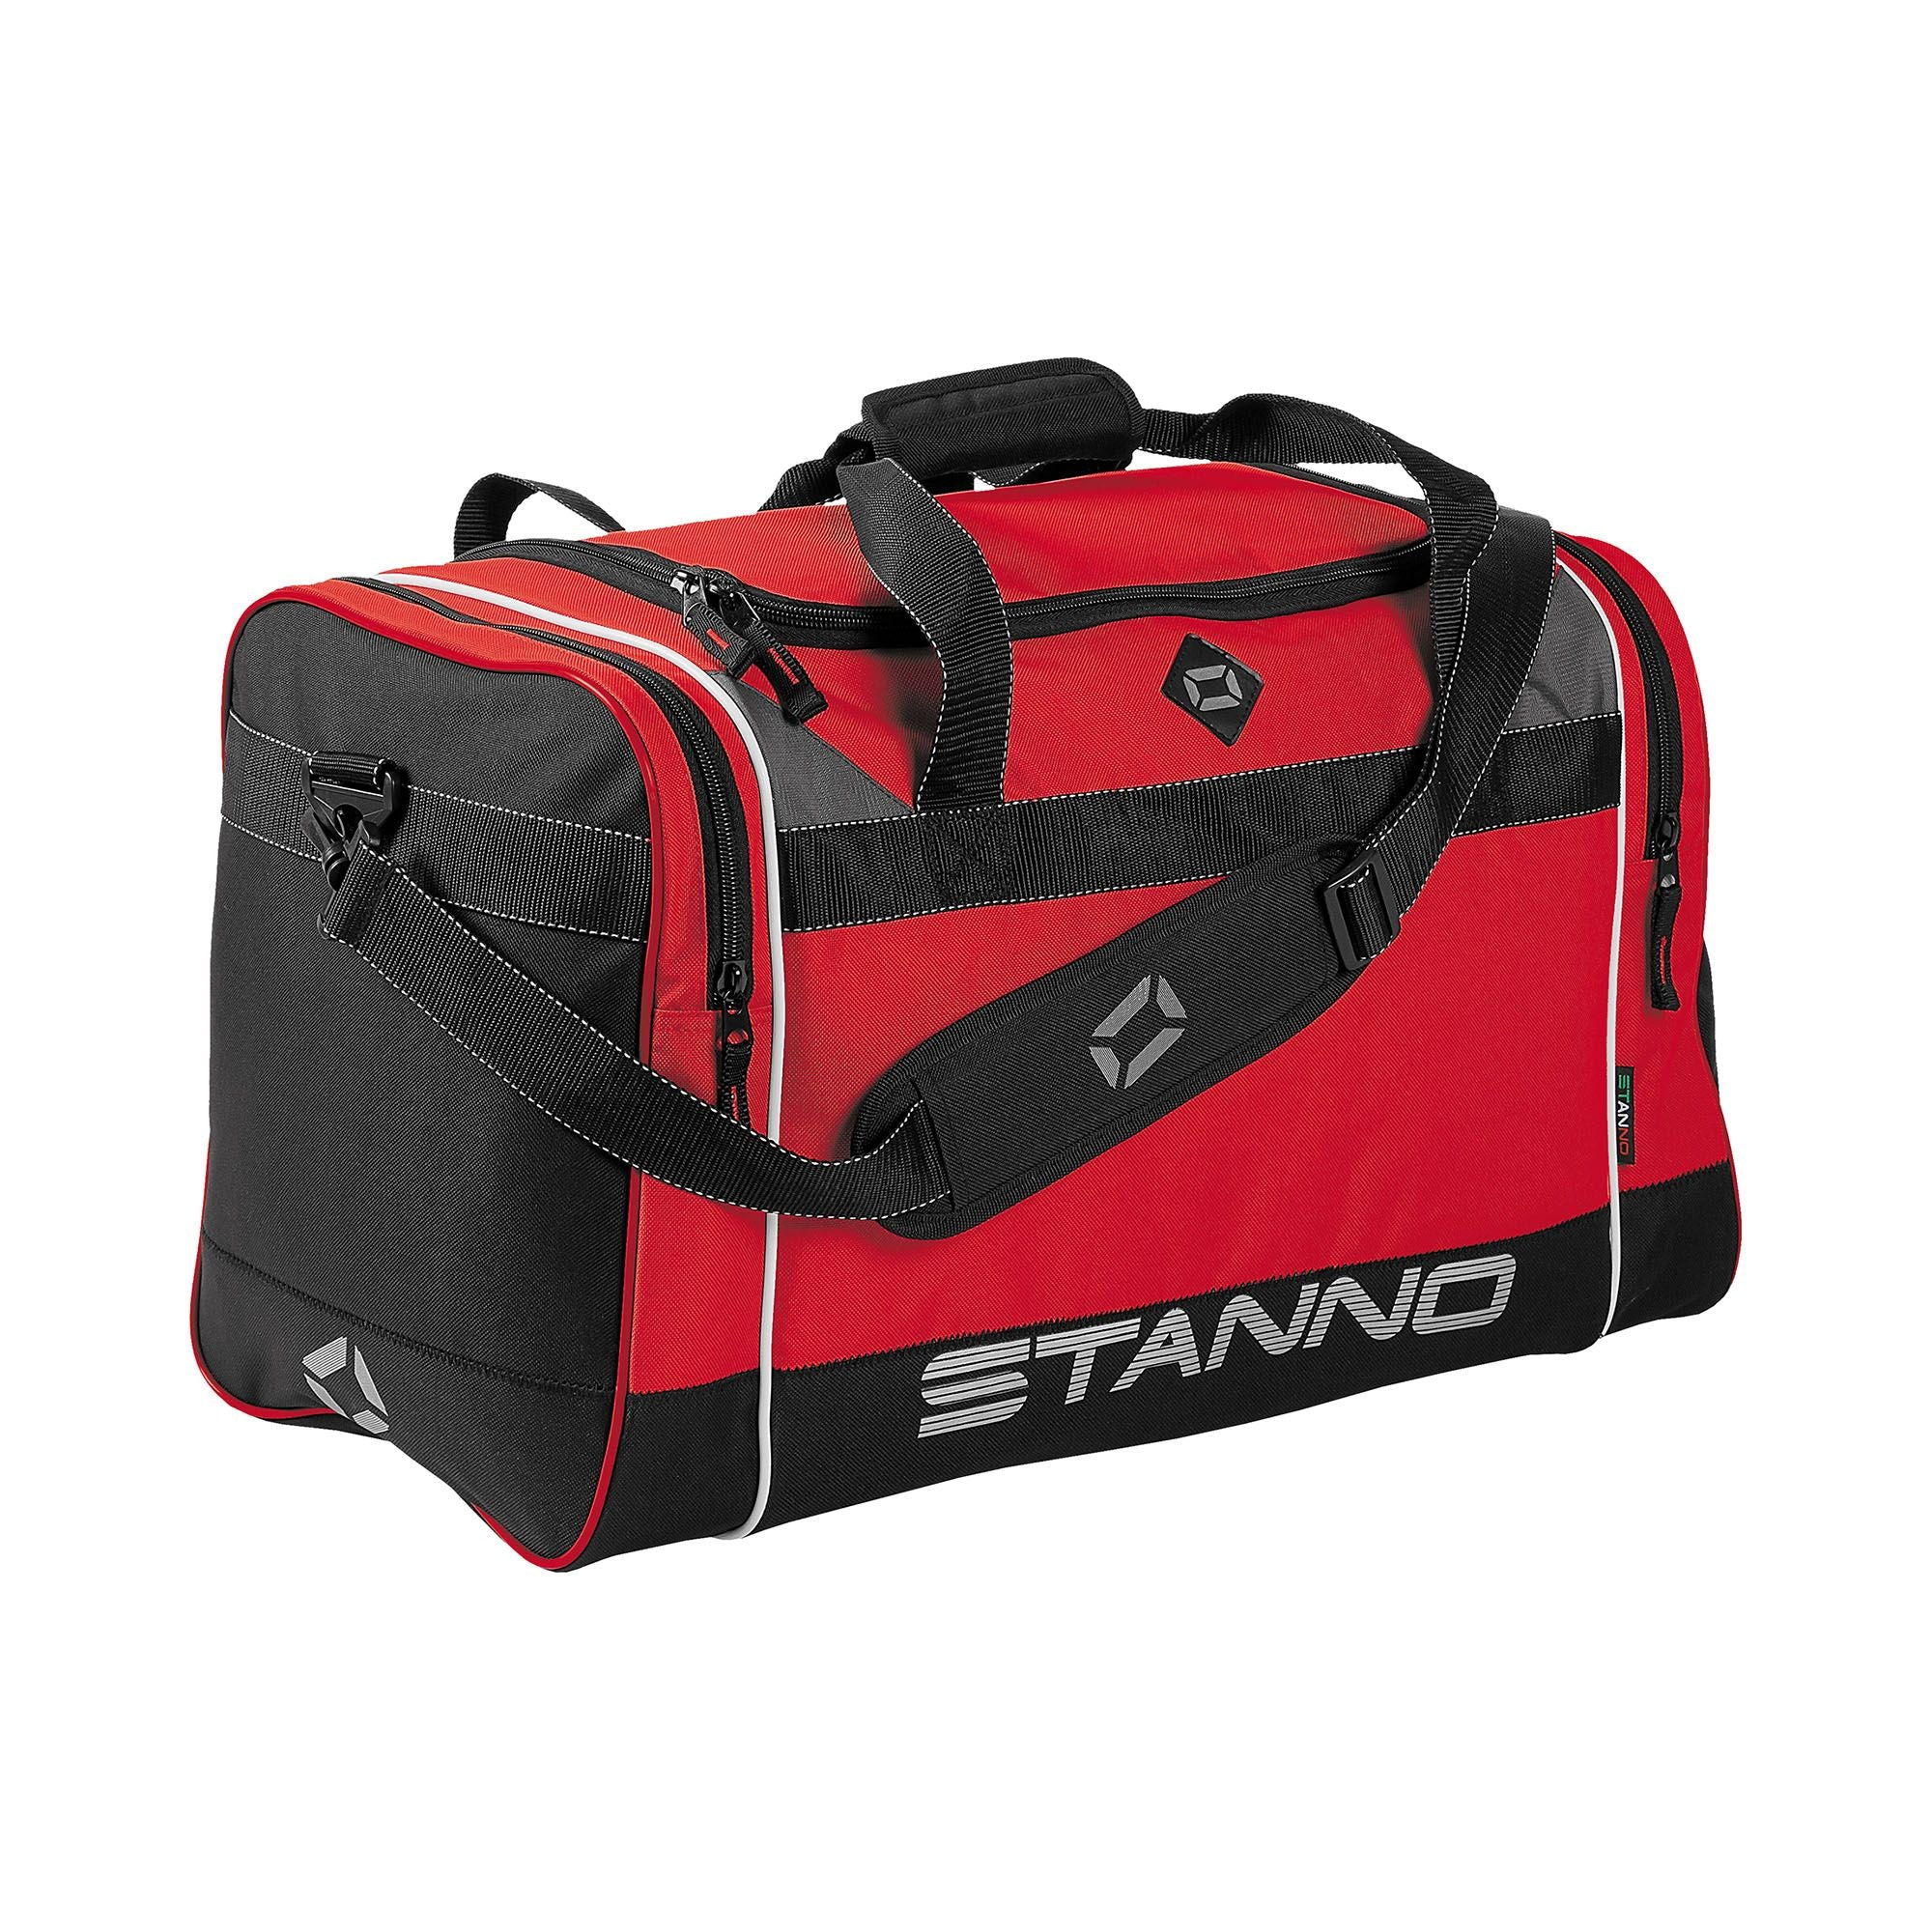 Stanno Sevilla Excellence sports bag in red with contrast black end panelswith shoulder strap. Large text logo at the bottom of the side panel.